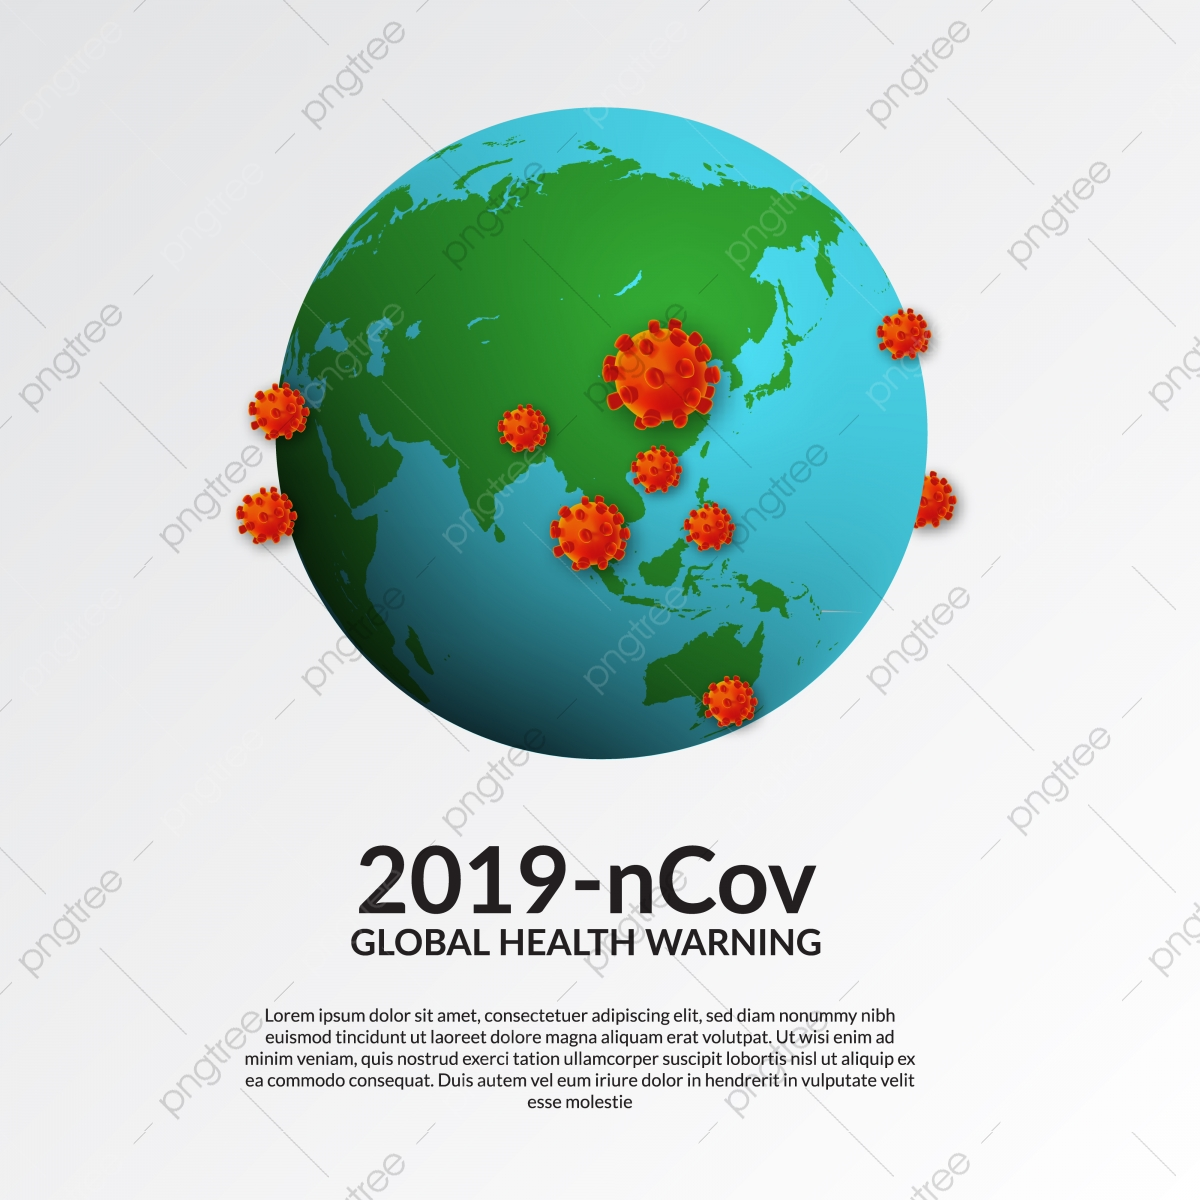 3d Virus Illustration With Earth Globe Global Pandemic